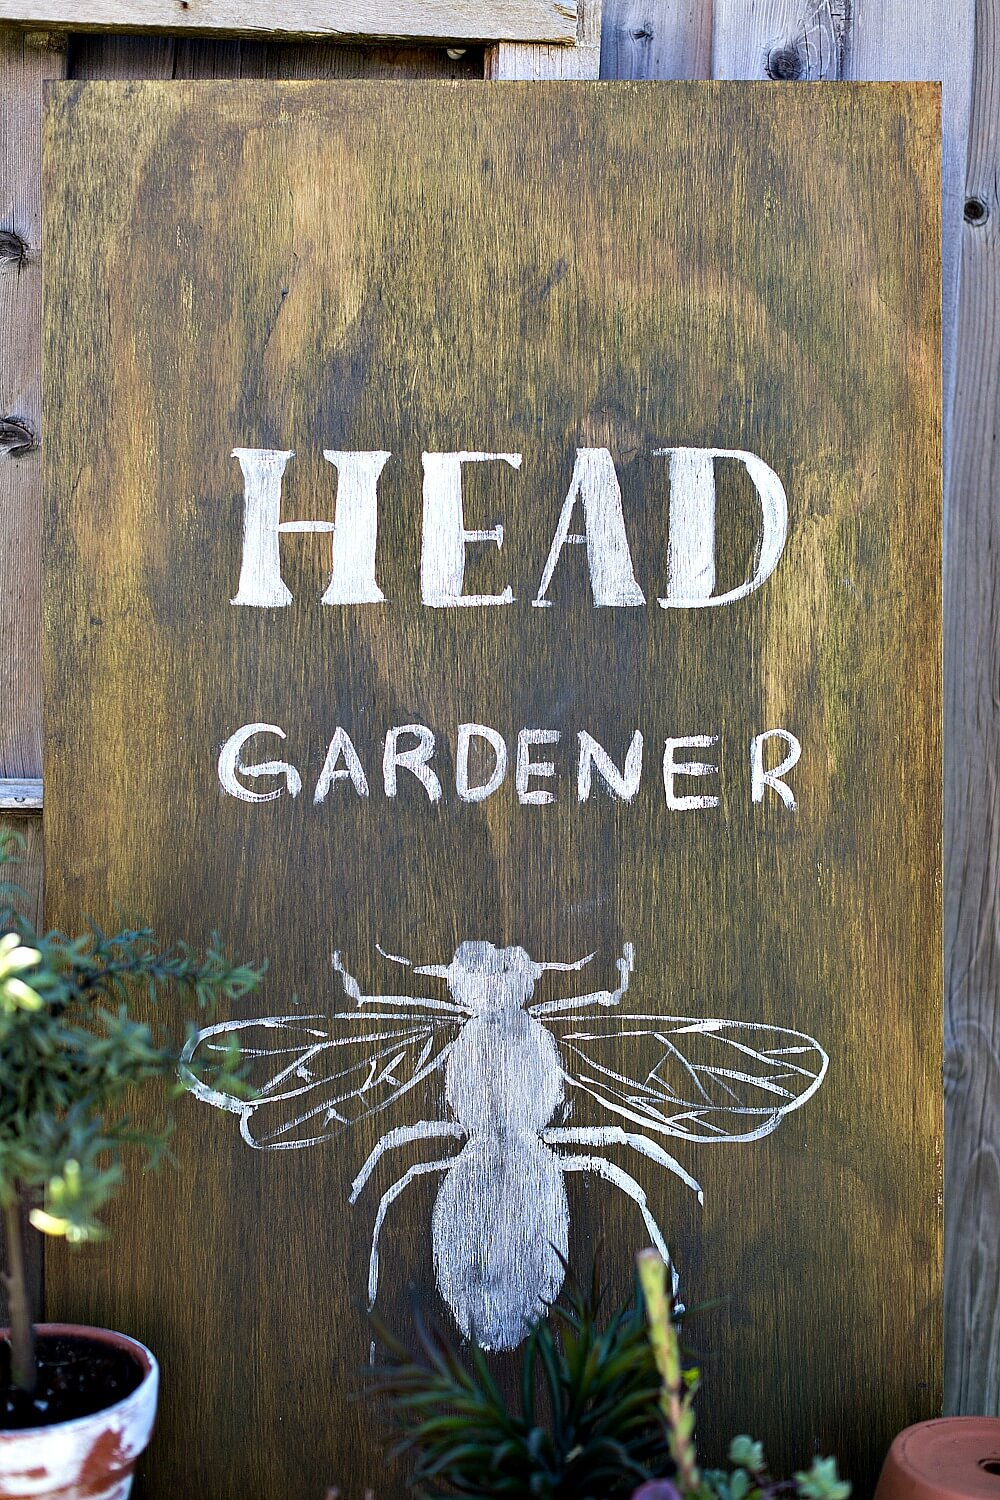 Fun Sign Celebrating the Bees